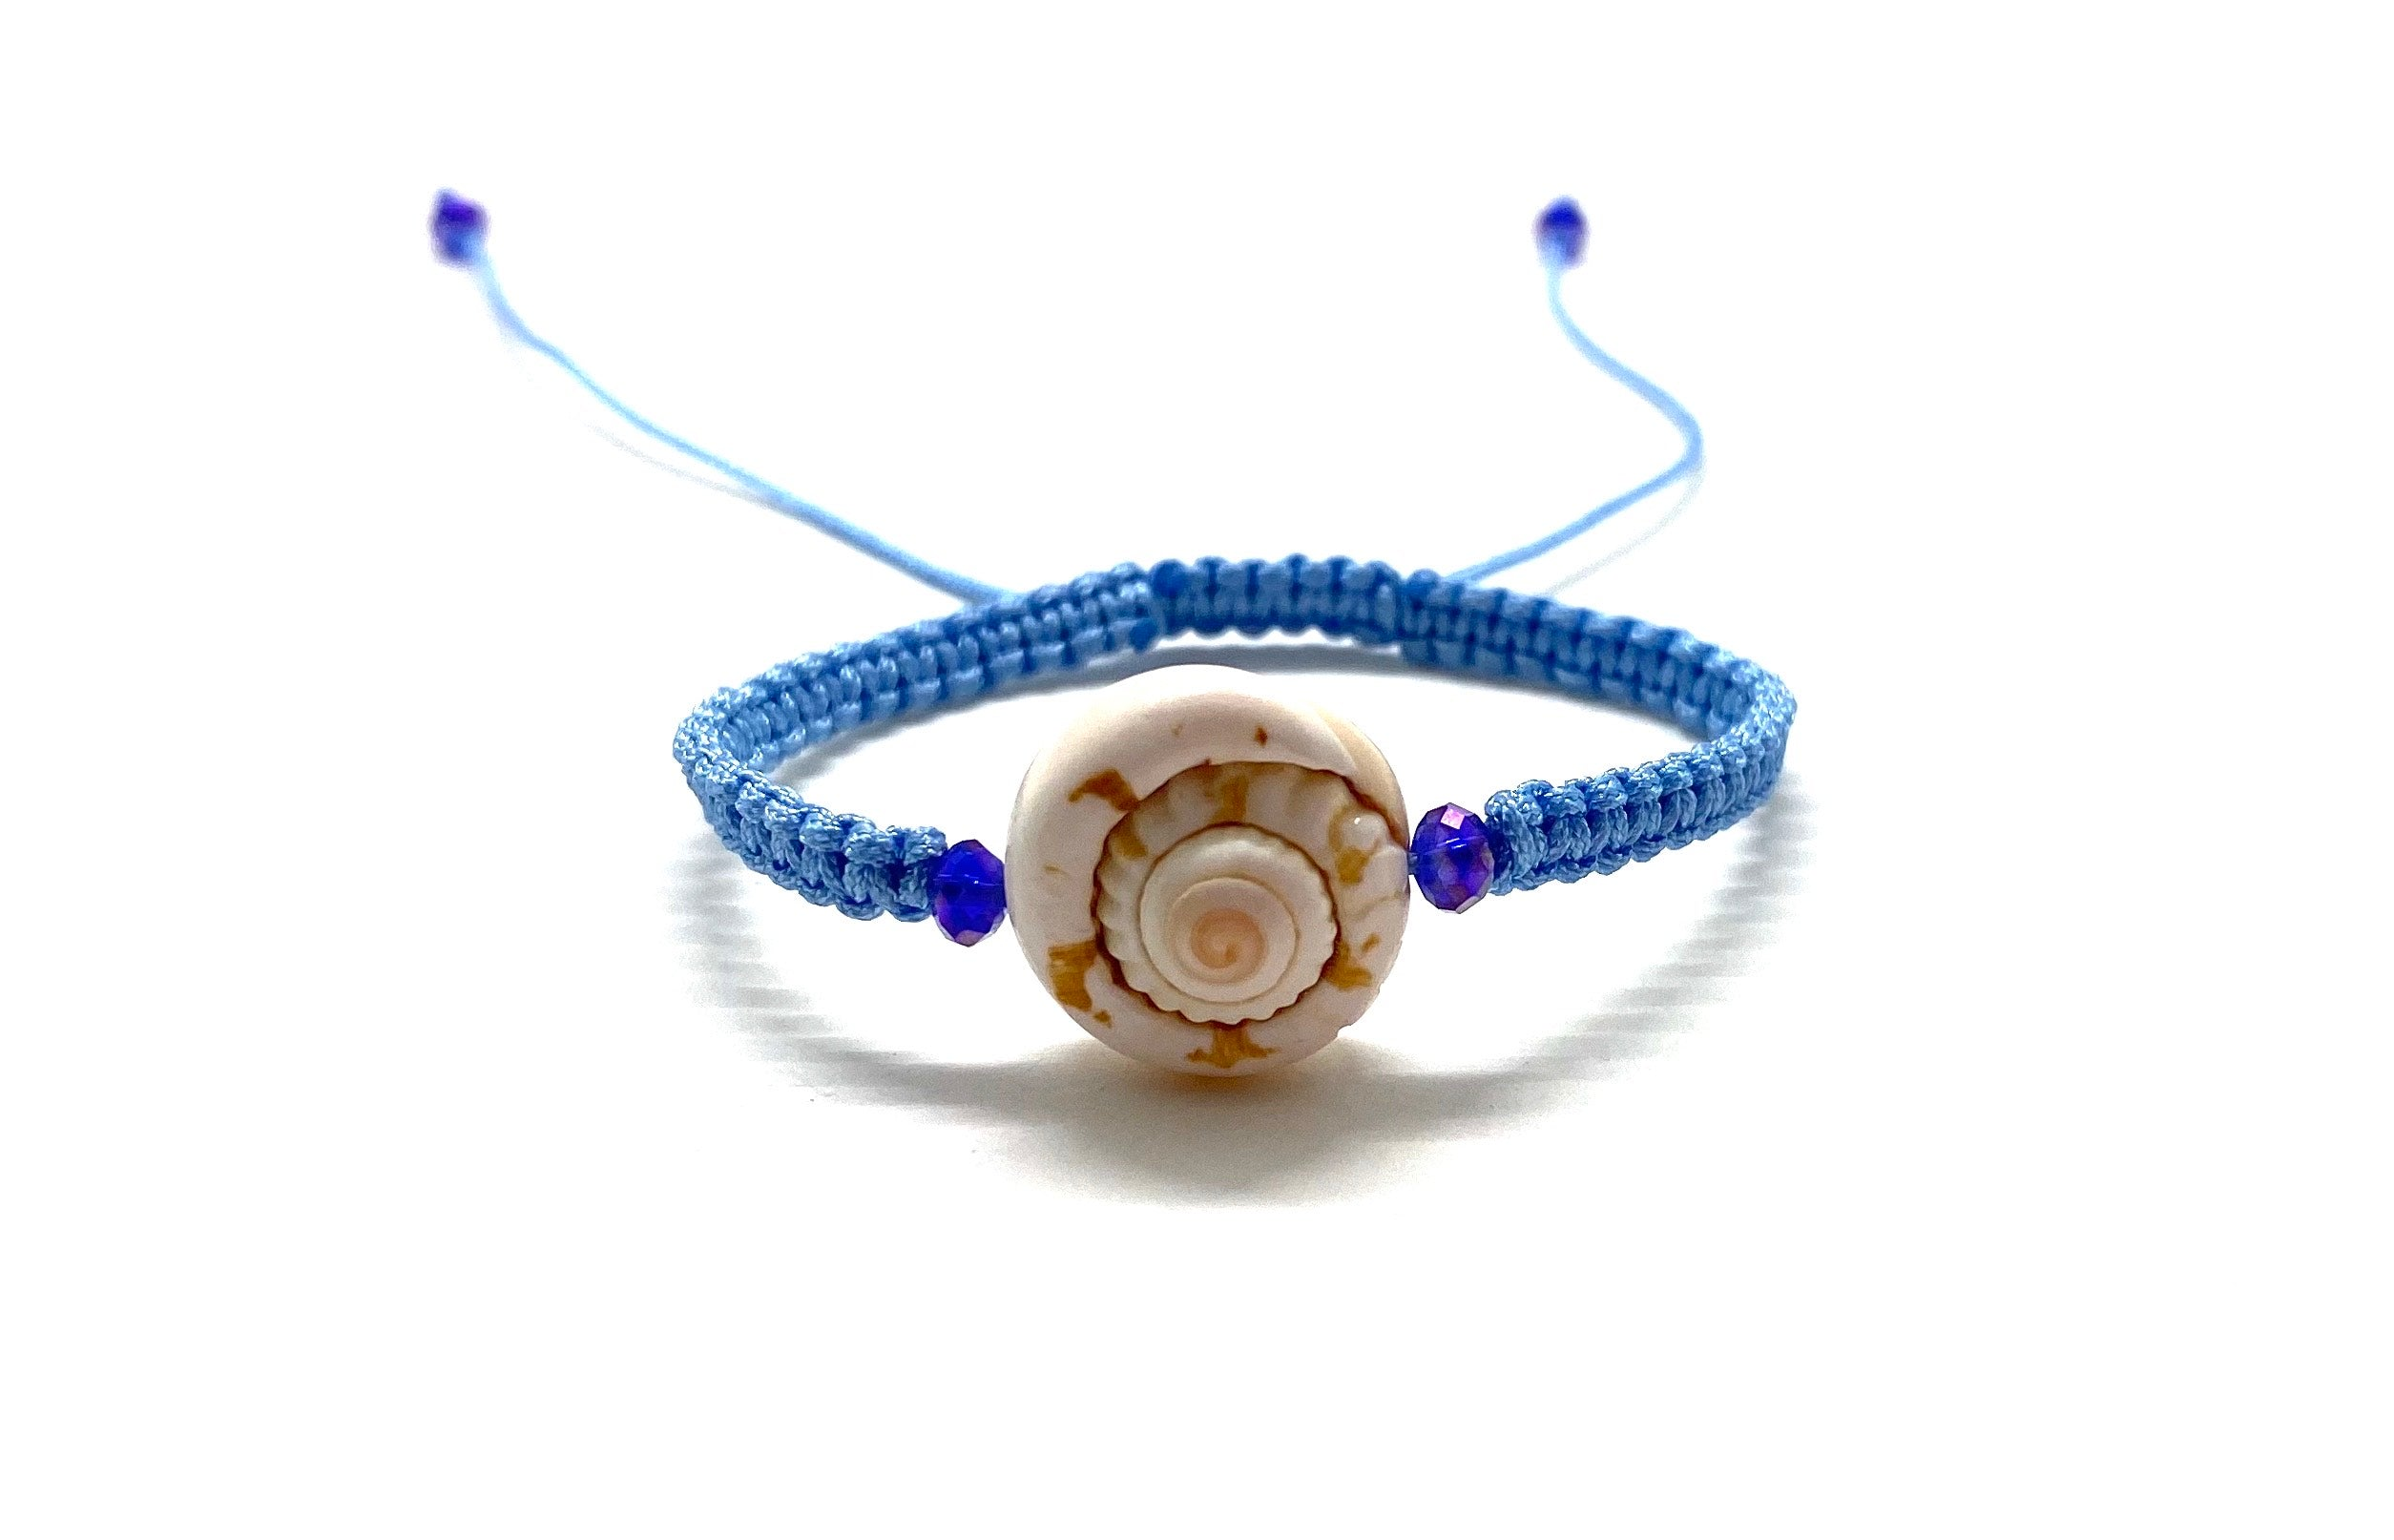 Seashell bracelet, purple Swarovski beads baby blue braided cord